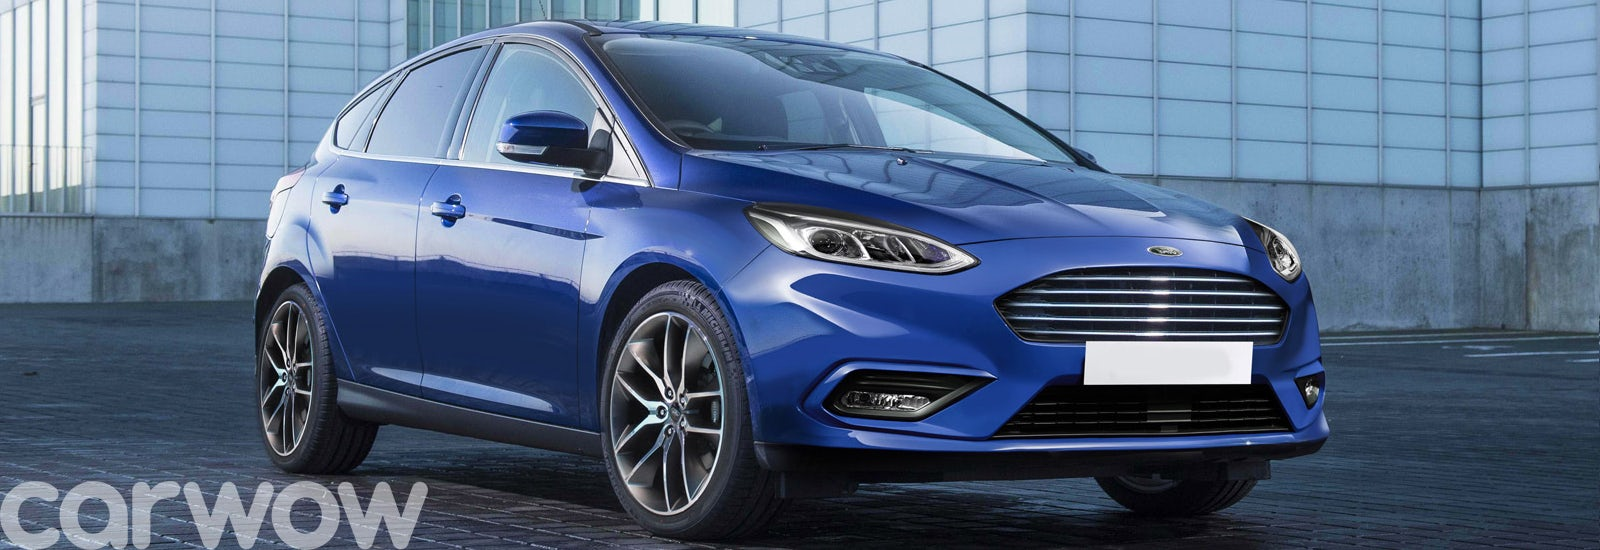 Ford kuga prices and release date - 2018 Ford Focus Styling